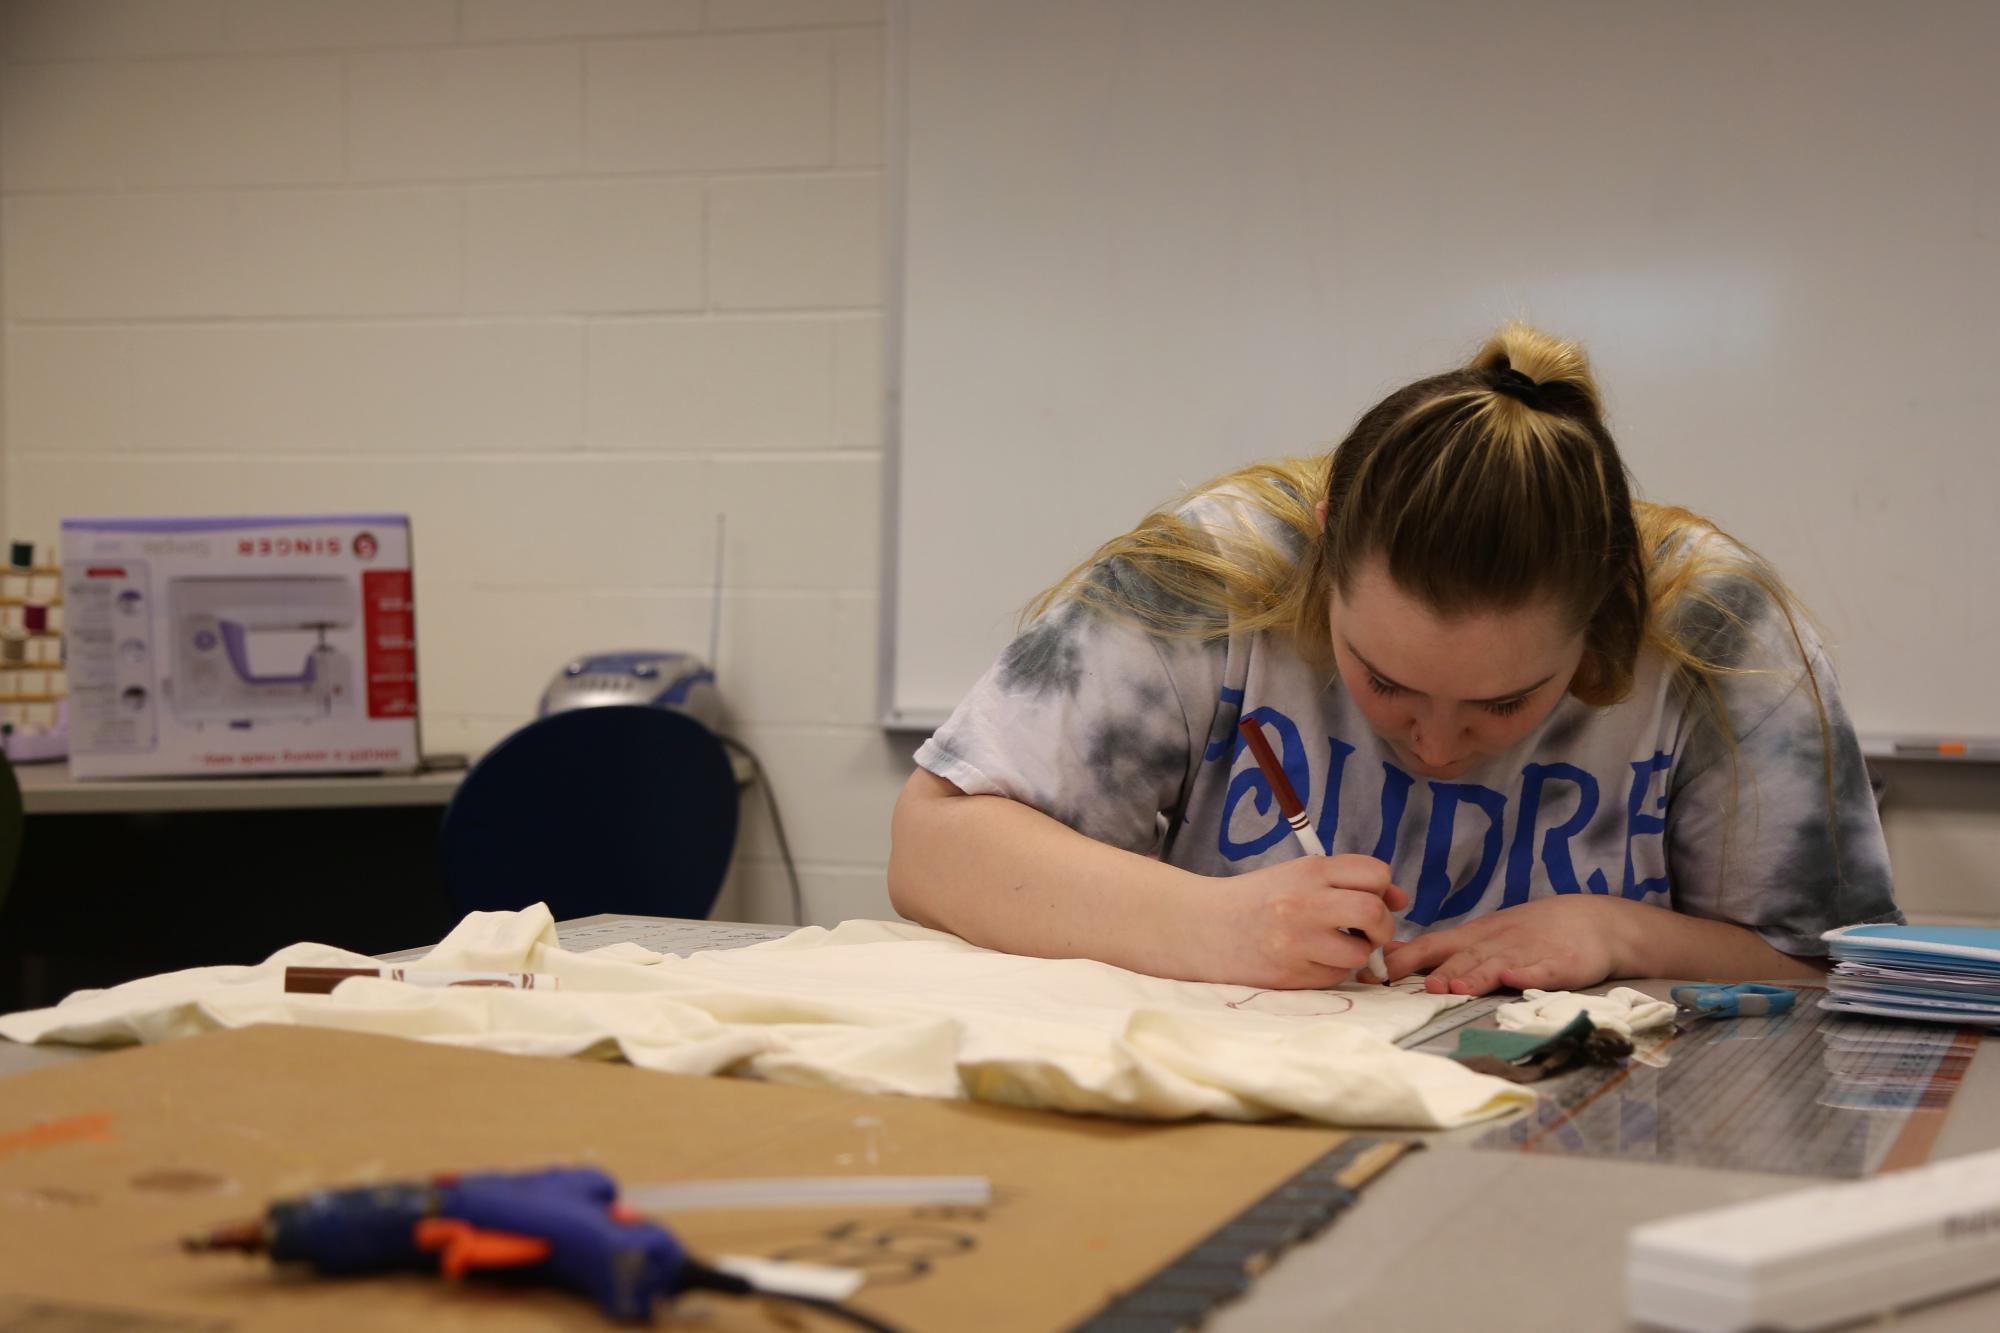 A student decorates fabric with magic markers in the PHS MakerSpace area.